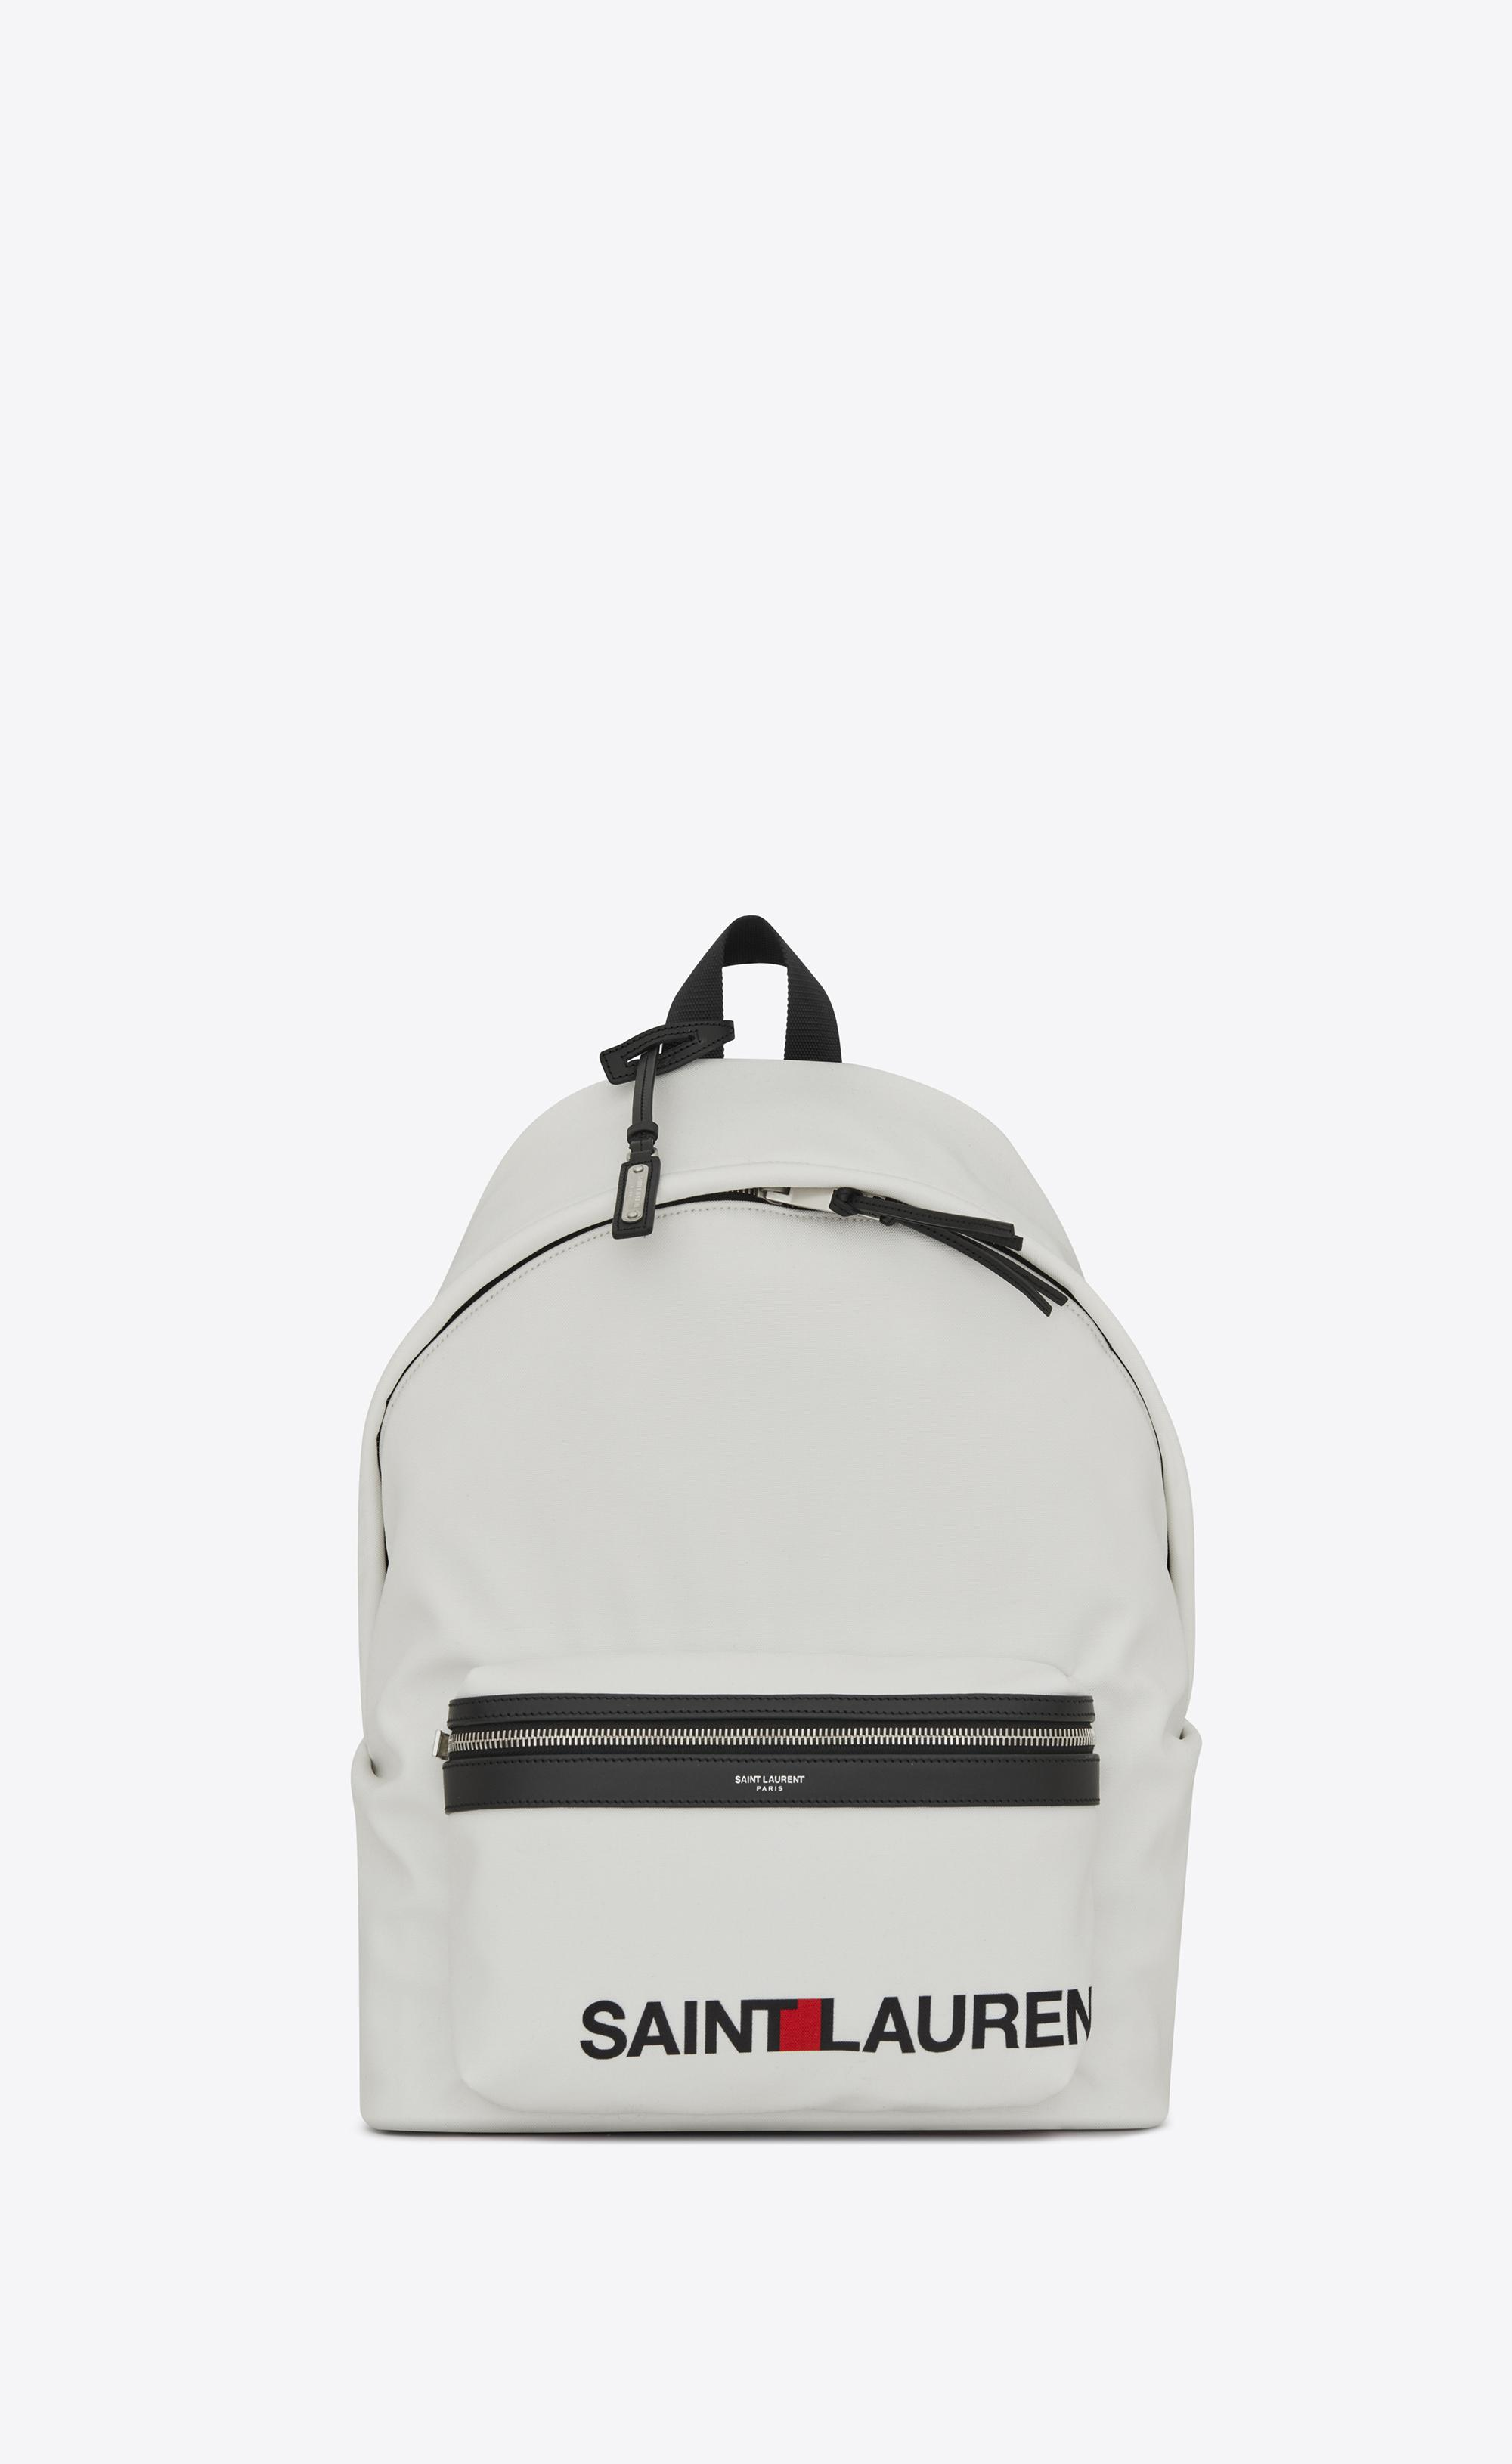 Lyst - Saint Laurent City Print Backpack In White in White for Men 012f4d5602533